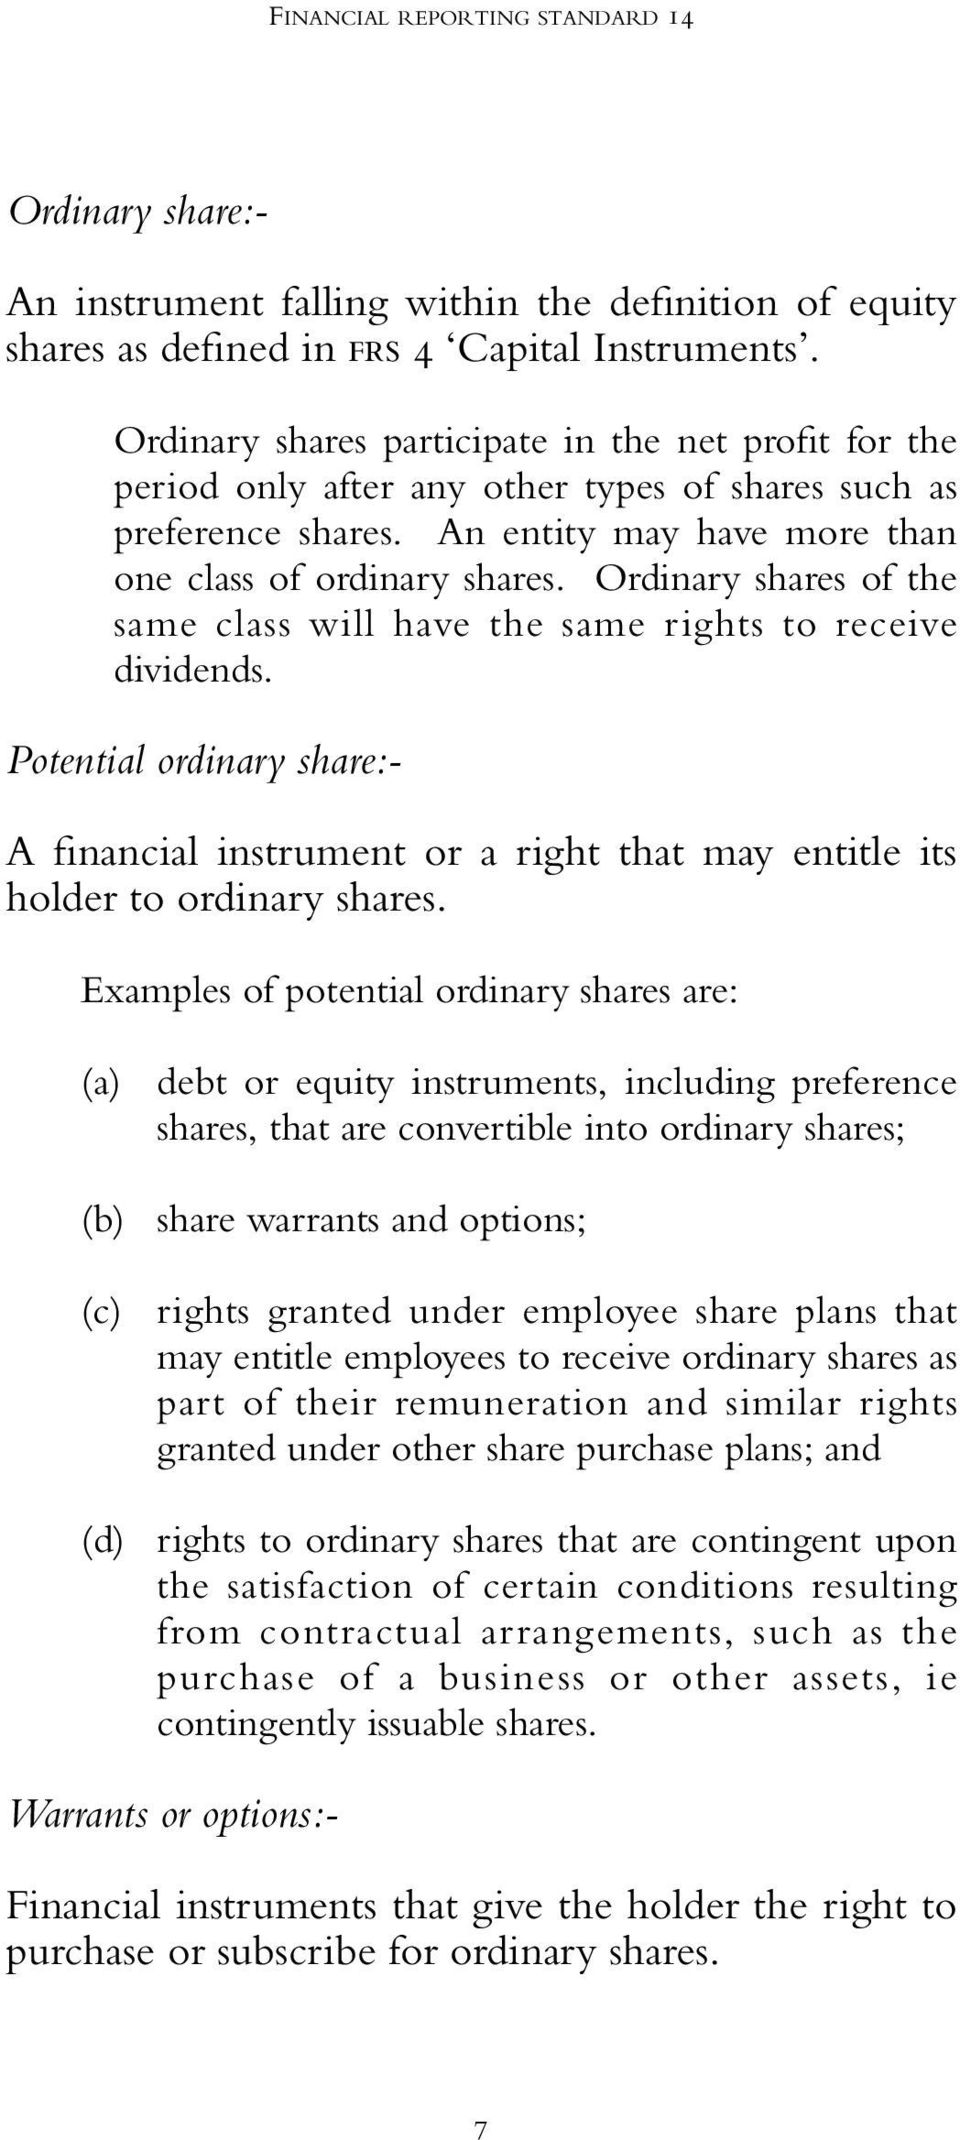 Ordinary shares of the same class will have the same rights to receive dividends. Potential ordinary share:- A financial instrument or a right that may entitle its holder to ordinary shares.